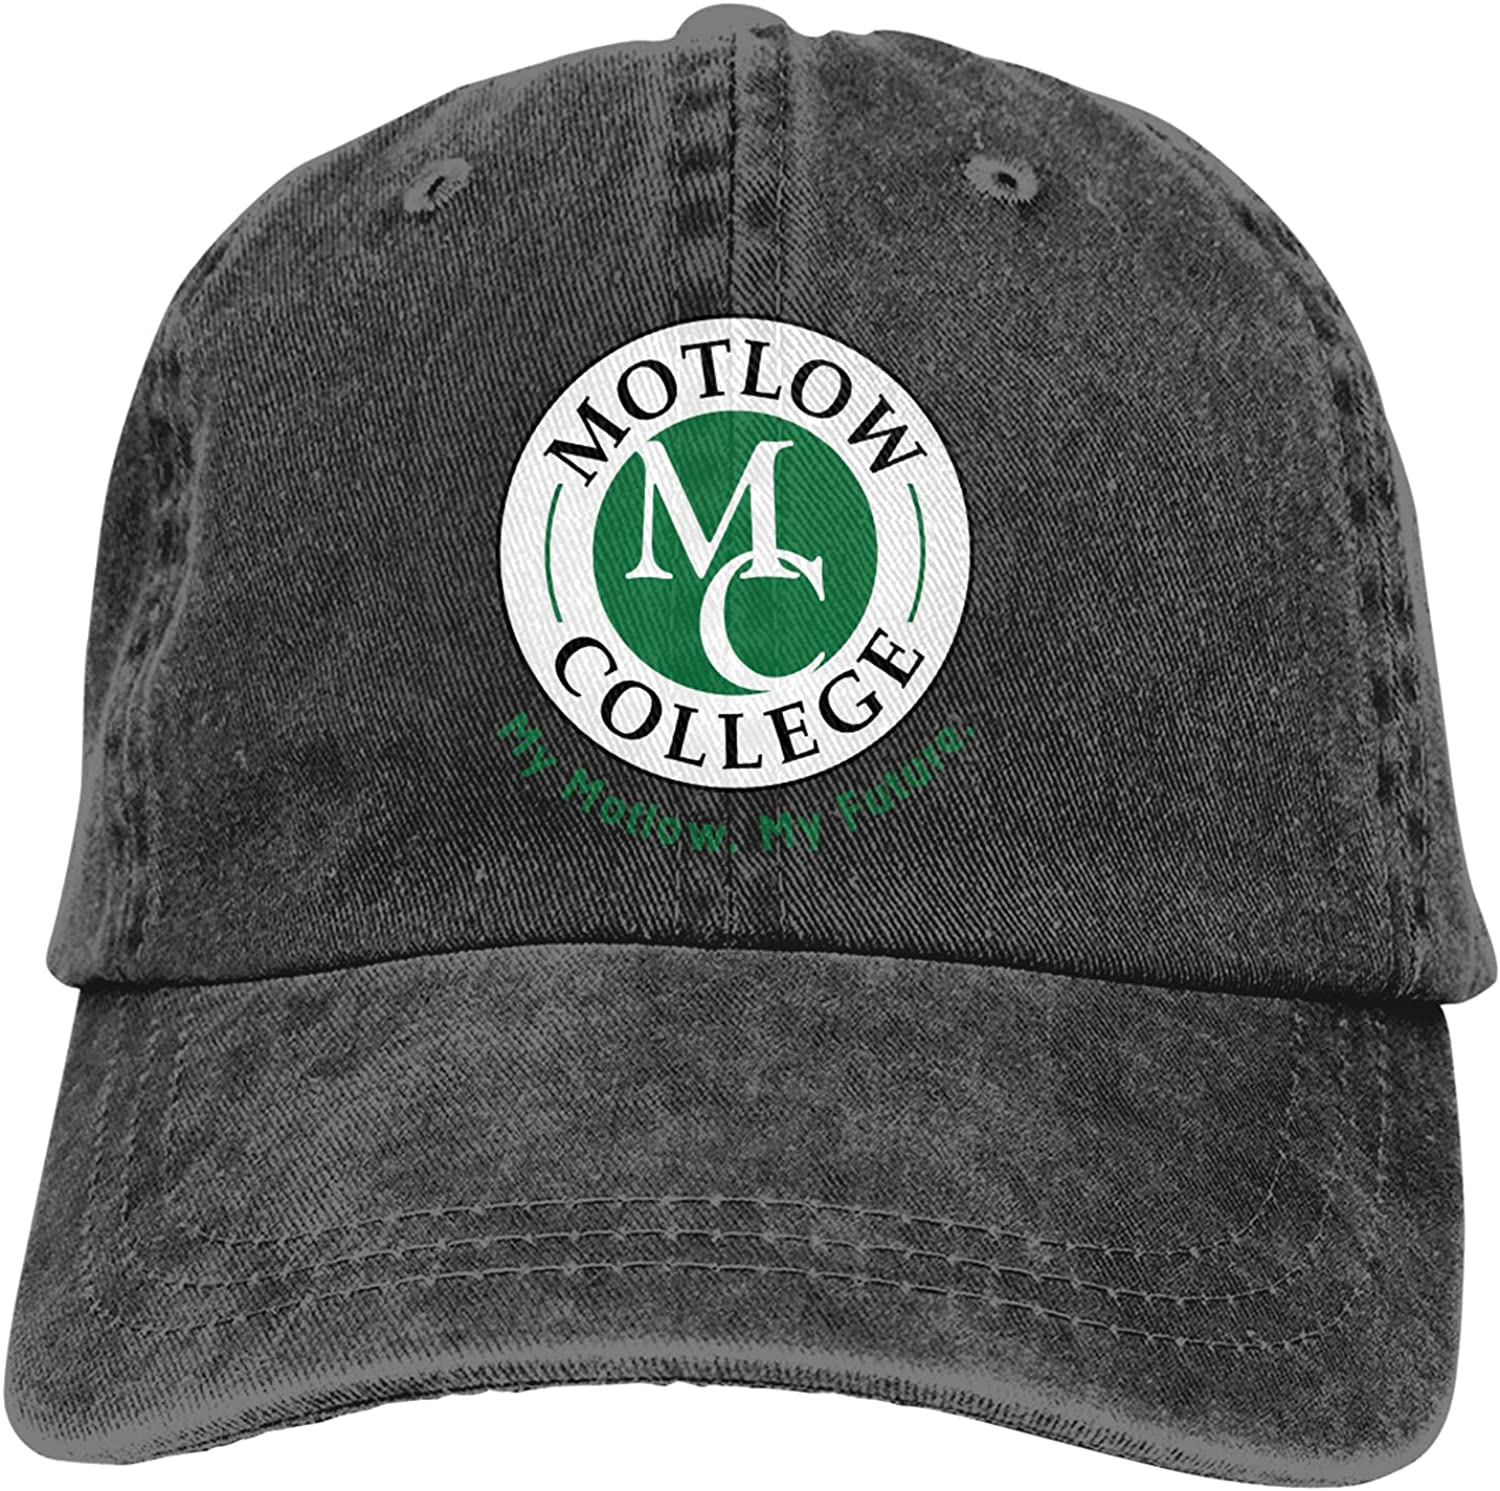 Albuquerque Mall Yund Motlow Portland Mall State Community -College for St College Suitable Cap